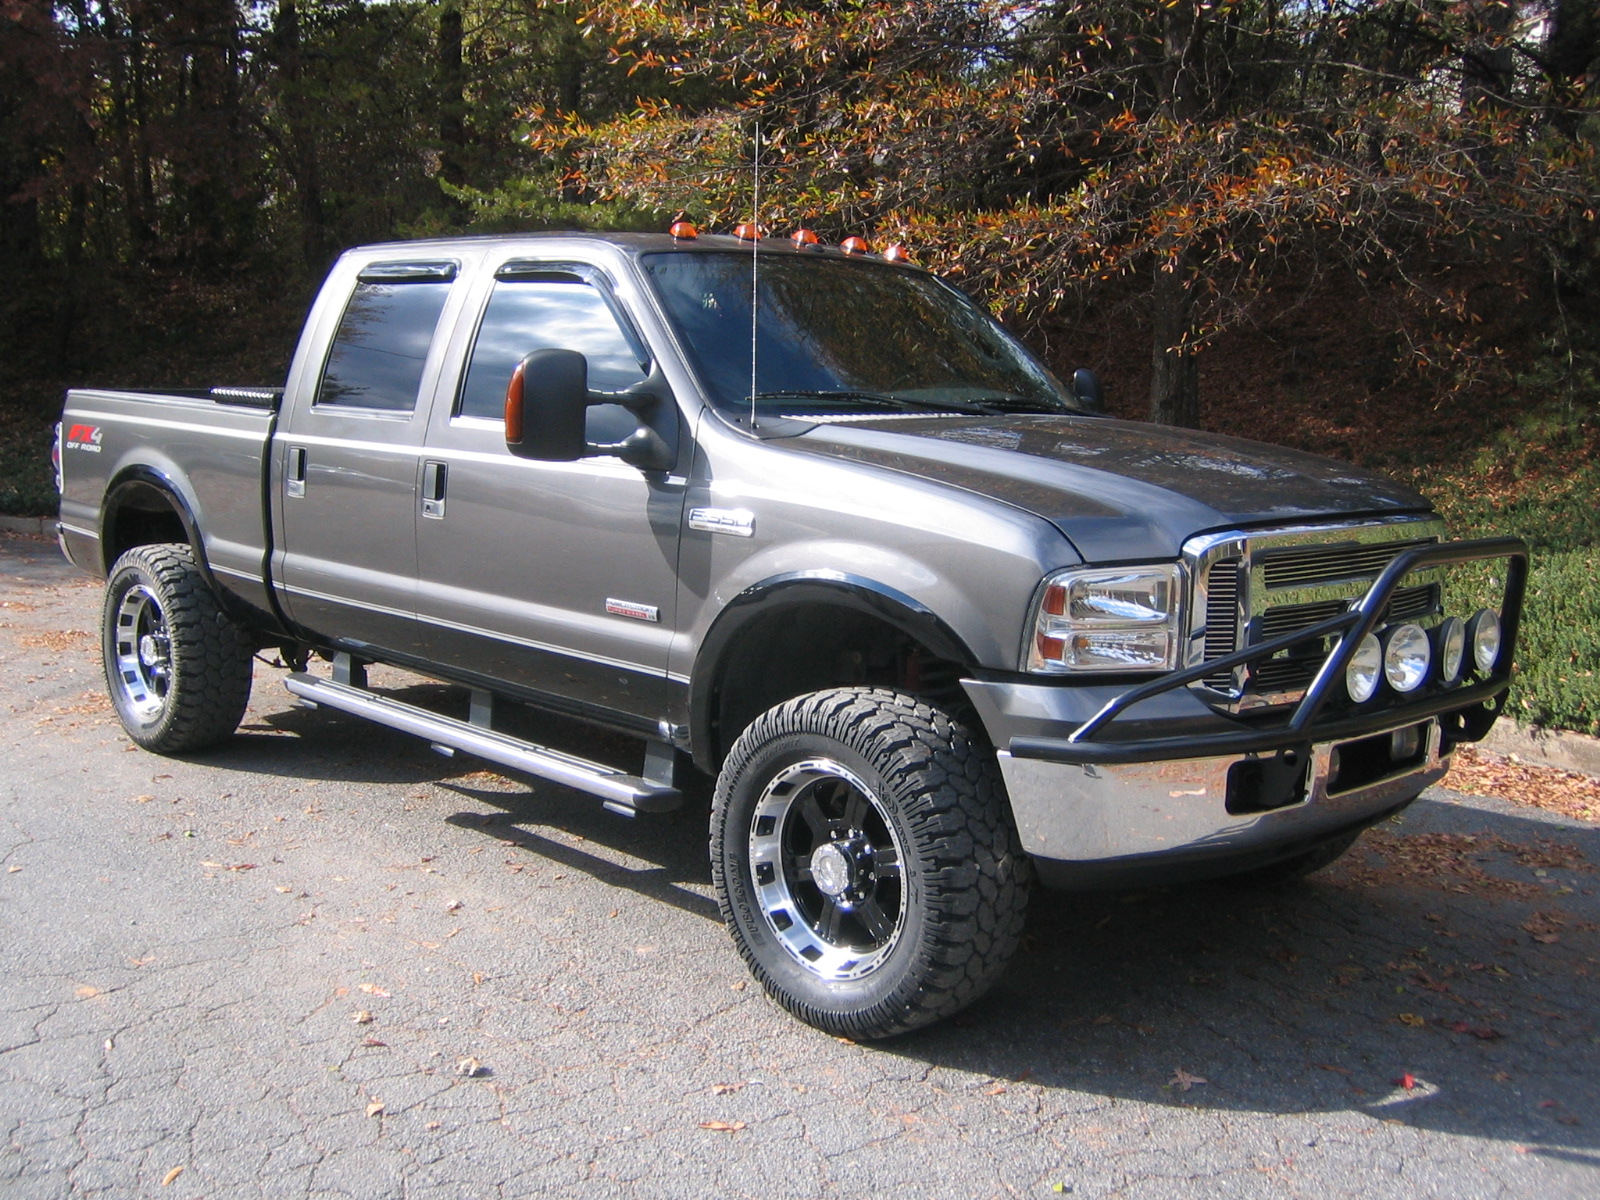 Chestnut metallic 2001 ford f150 xlt supercab 4x4 exterior photo -  Ford F 350 Super Duty 7